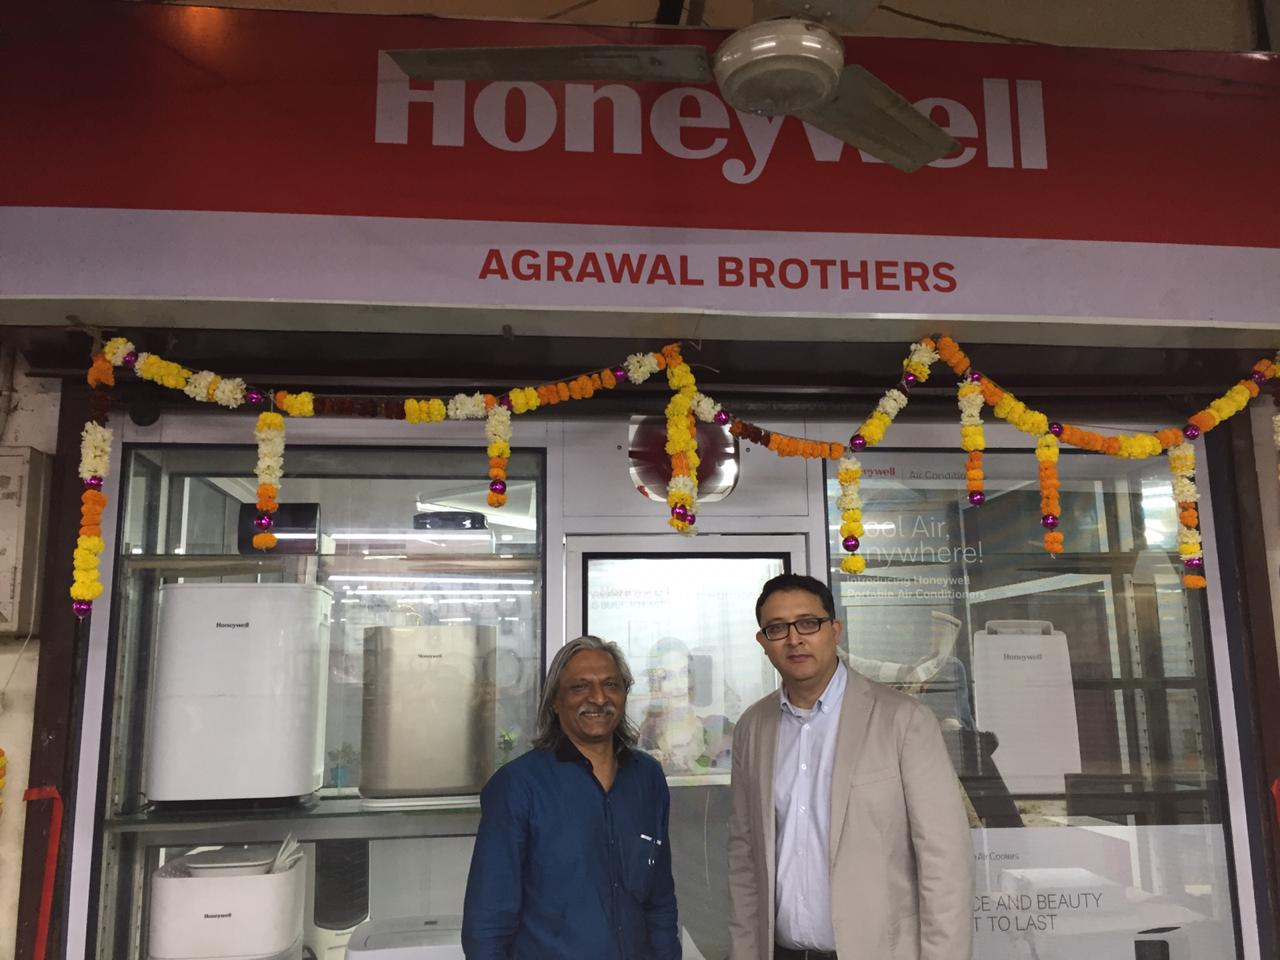 (L-R) Mr. Dinesh Agrawal -shop owner and Mr. Anupam Mathur, Sales Director, New Business – Connected Living Solutions, Honeywell Building Technologies, India